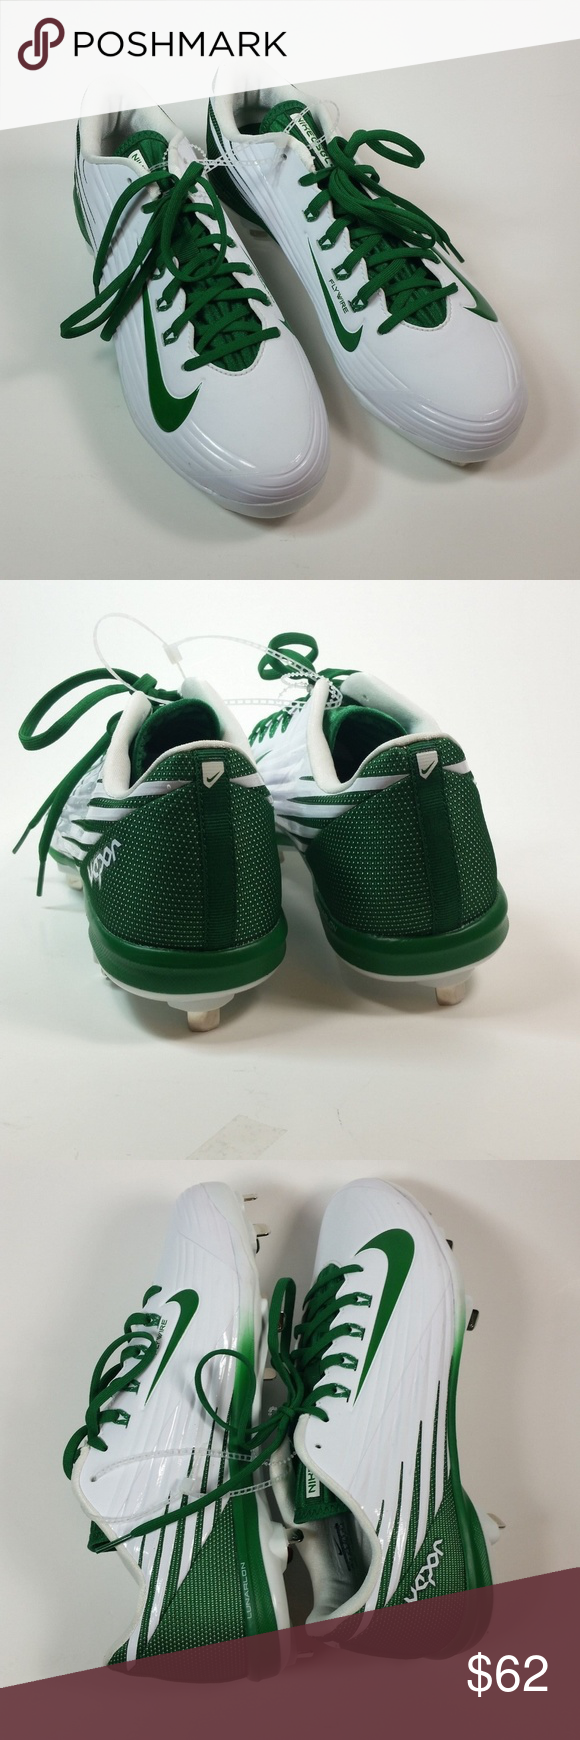 13a5d2feb47b Nike Metal Cleats BSBL Vapor Lunarlon Flywire 10.5 Nike Metal Cleats BSBL  Vapor Lunarlon Flywire 10.5 New, No Tags, No Box Men's Size 10.5 White, Green  Nike ...